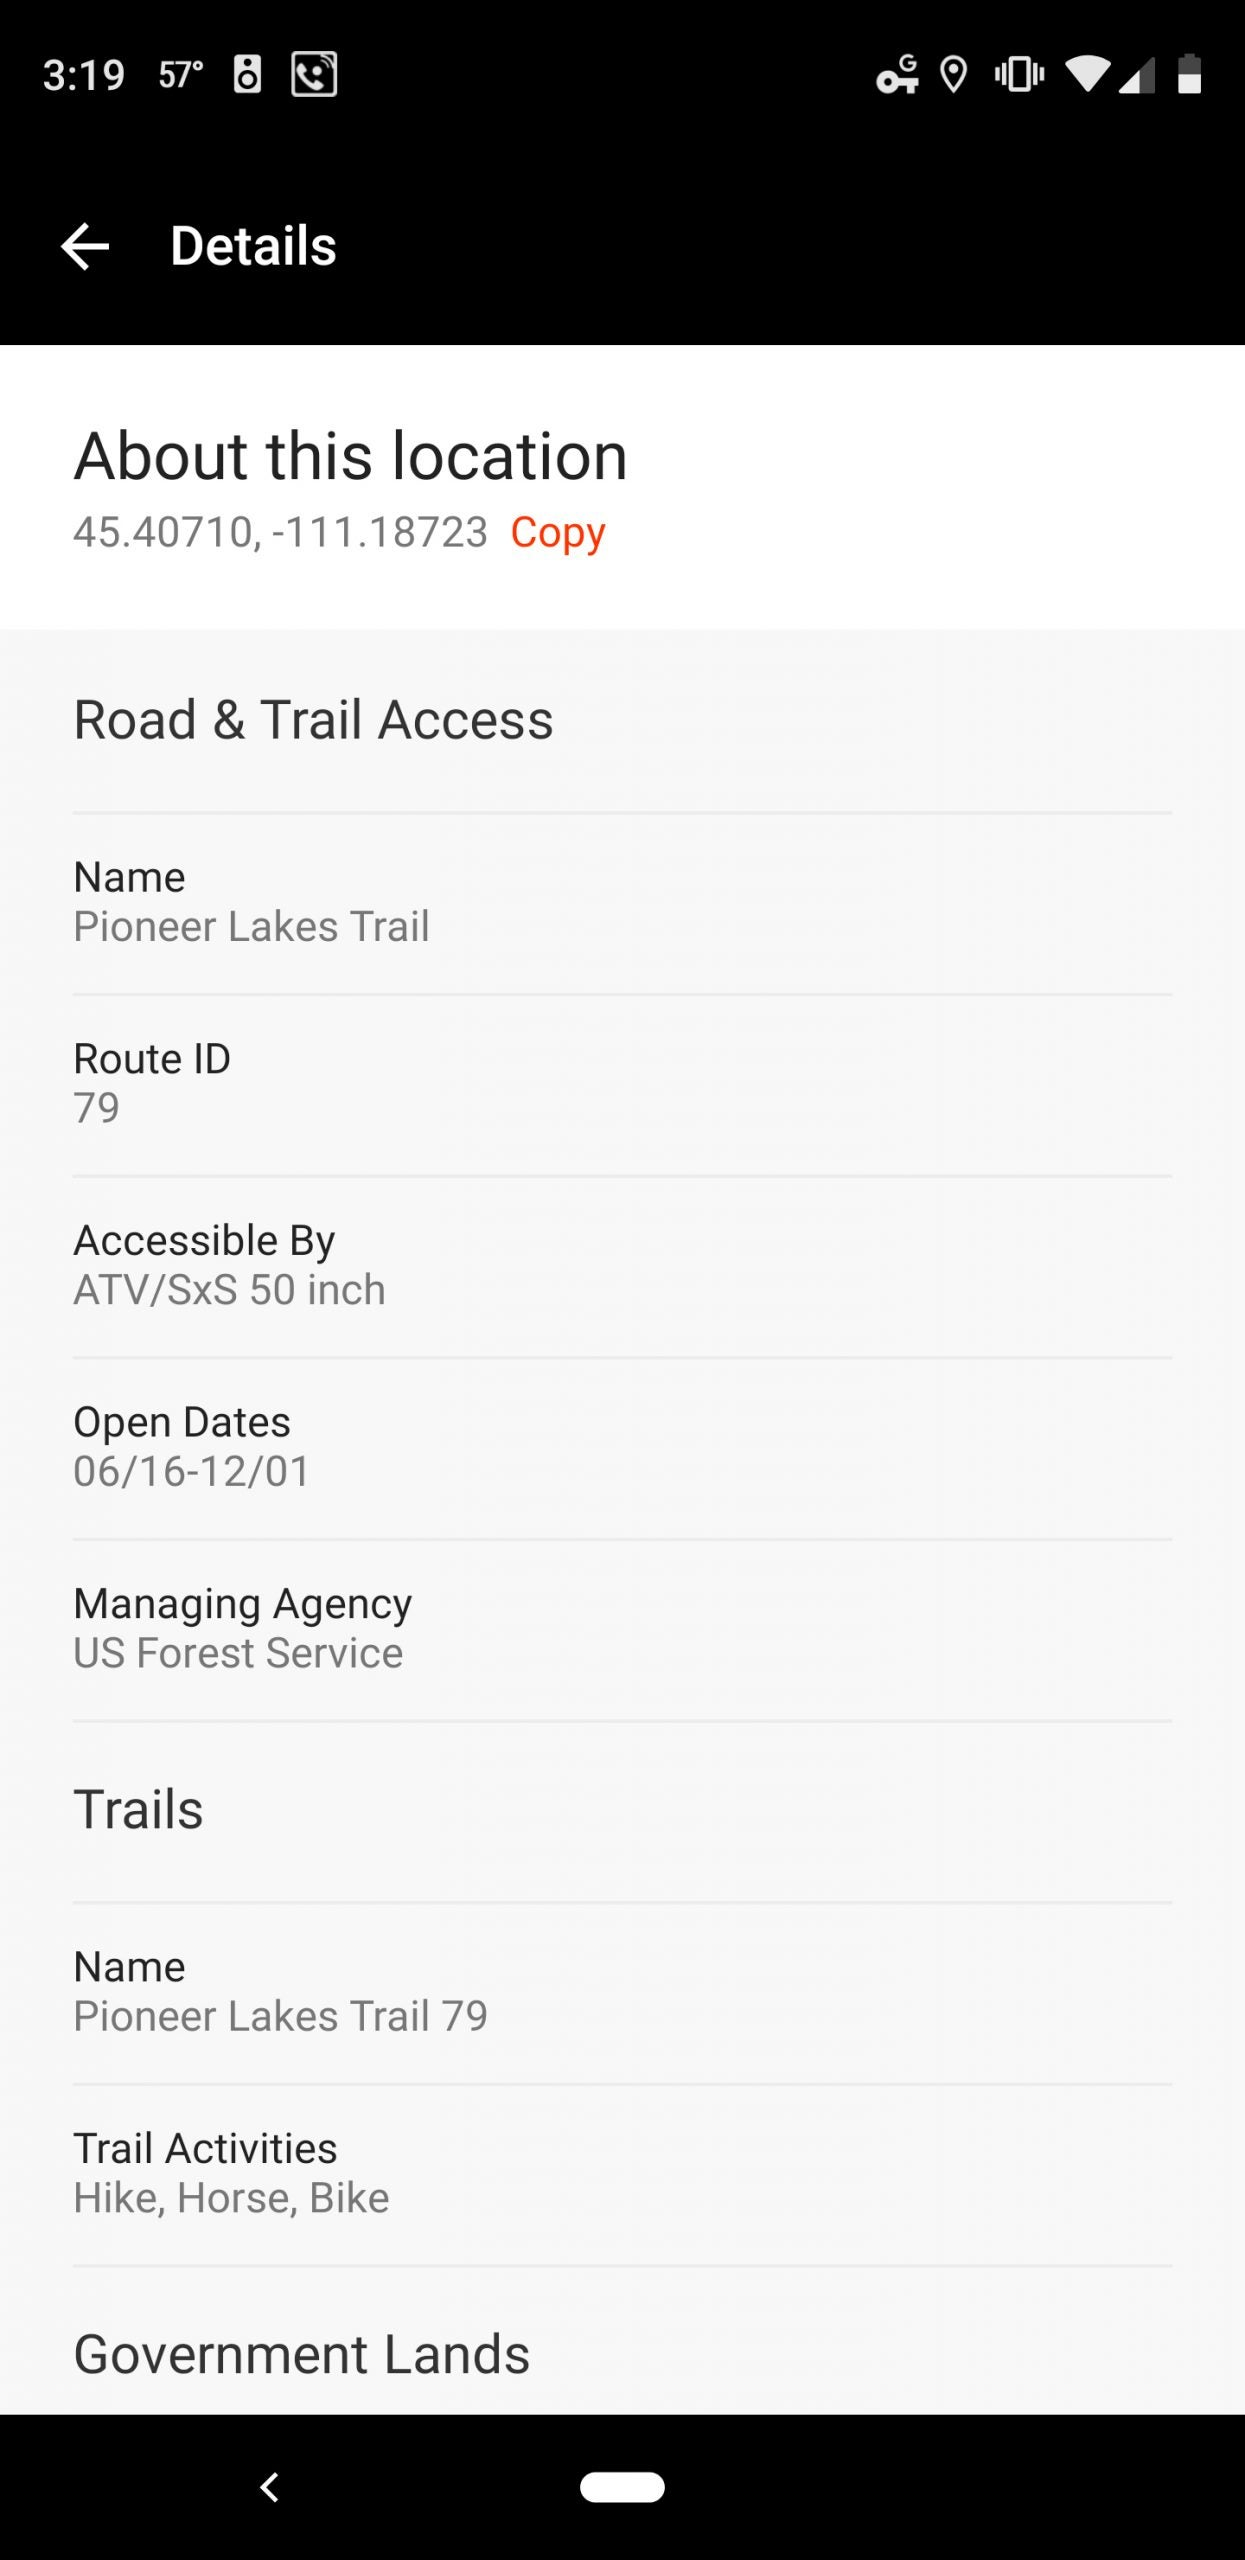 Clicking the trail I'd need to use to get to that lake brings up all its usage data. Here I can see that I'll need to use a dirt bike or ATV to get there (or hike, but it's a long way) and that the trail opens on June 16.